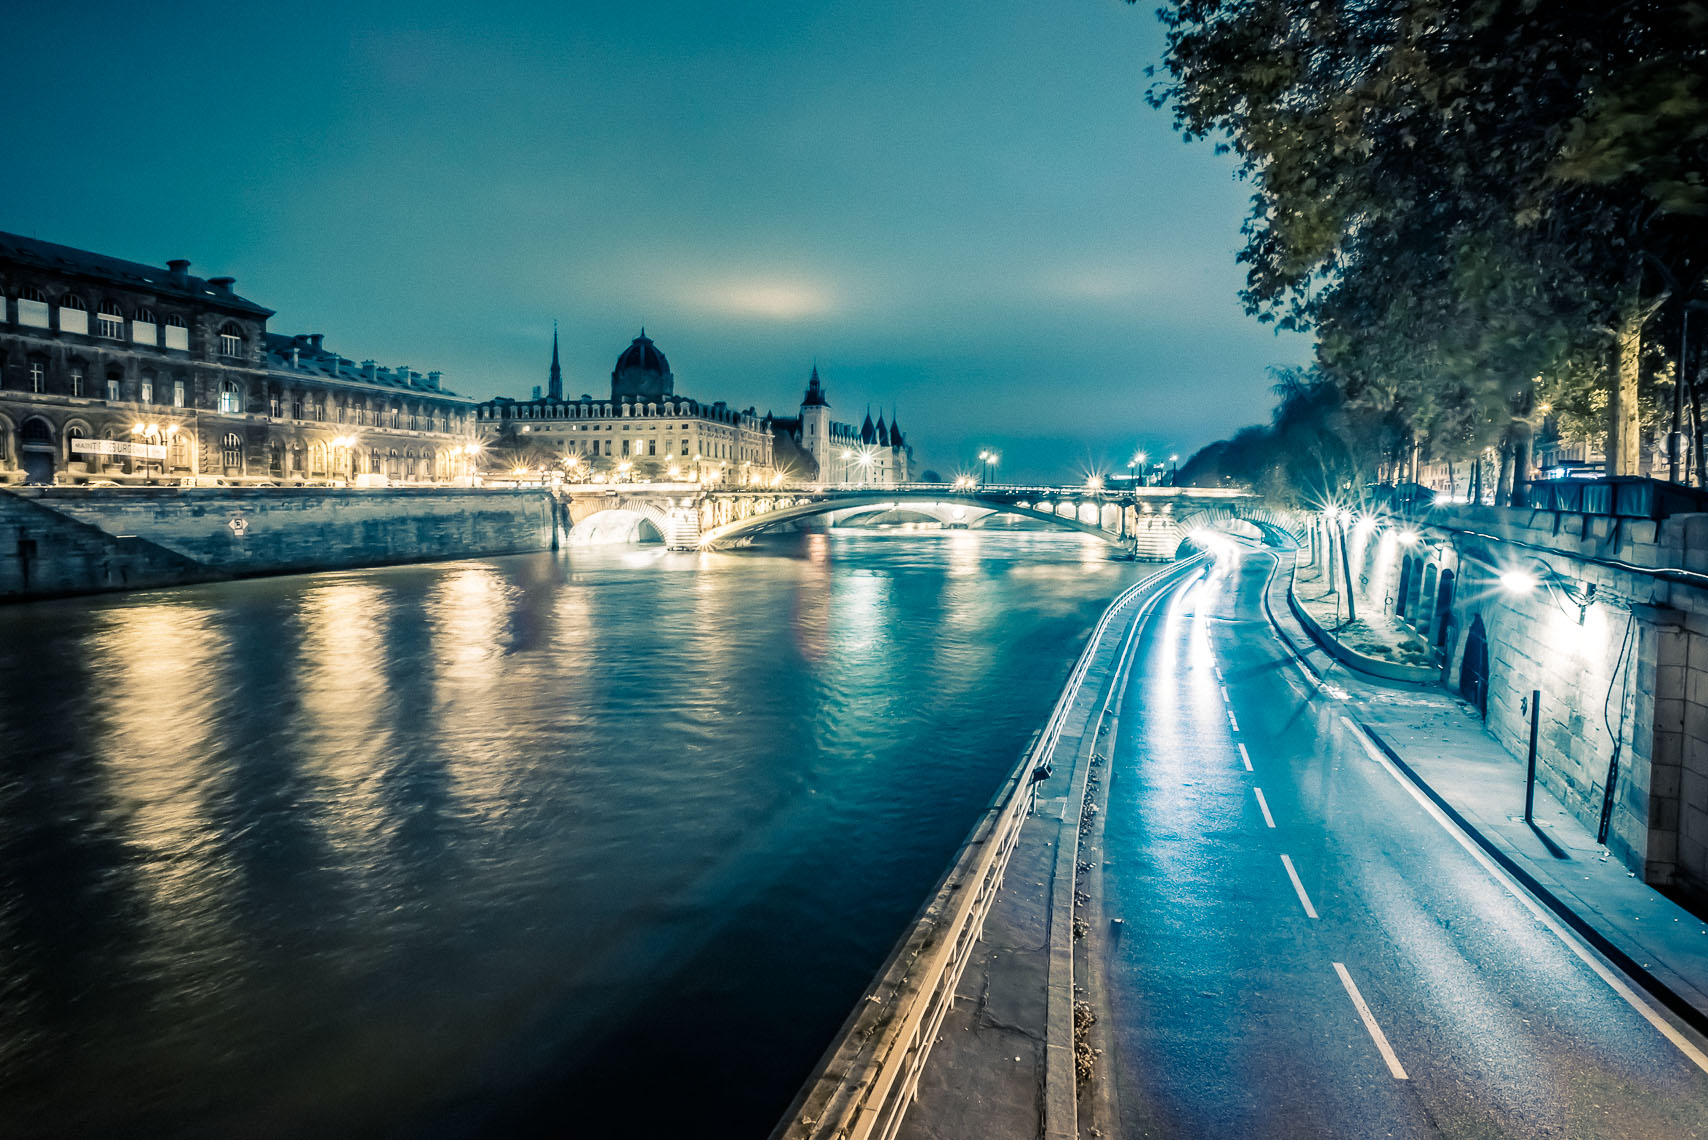 001_Paris by D800_La Seine